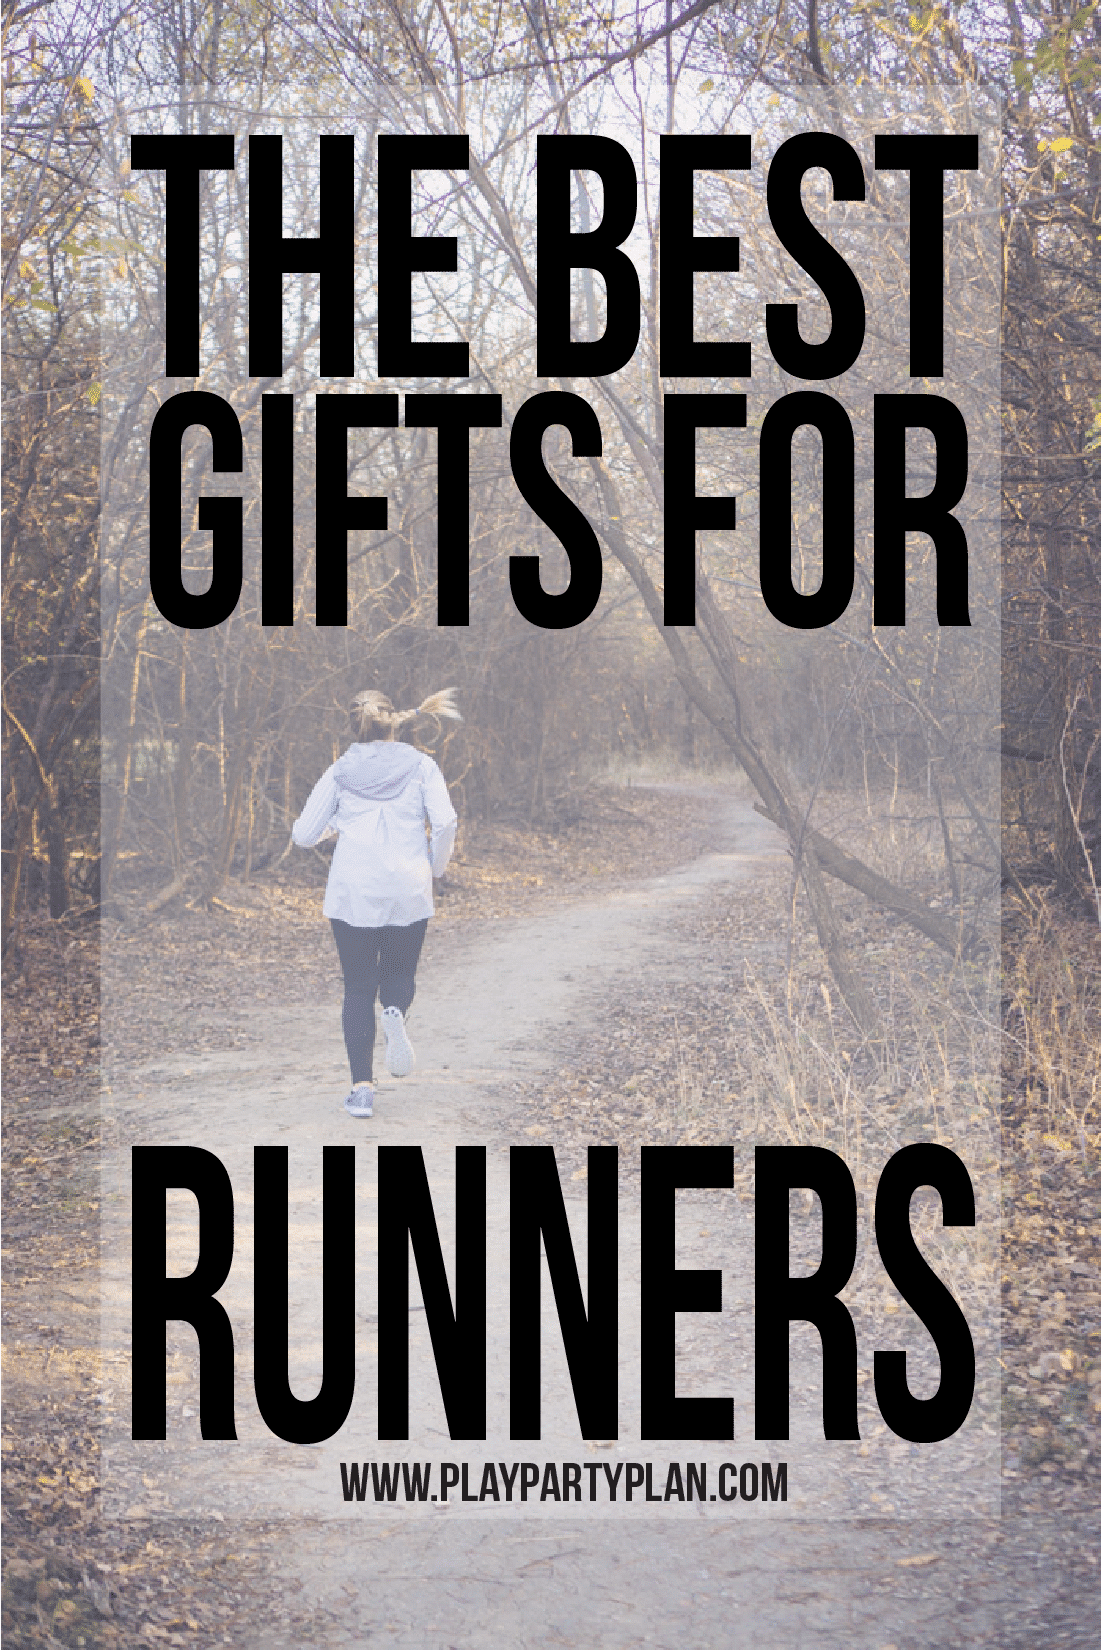 The best Christmas gifts for runners! Looking for running gifts for women in your lives? These are great gift ideas whether you're looking for something small and cheap or looking for something bigger and cute to wear while they run cross country! via @playpartyplan